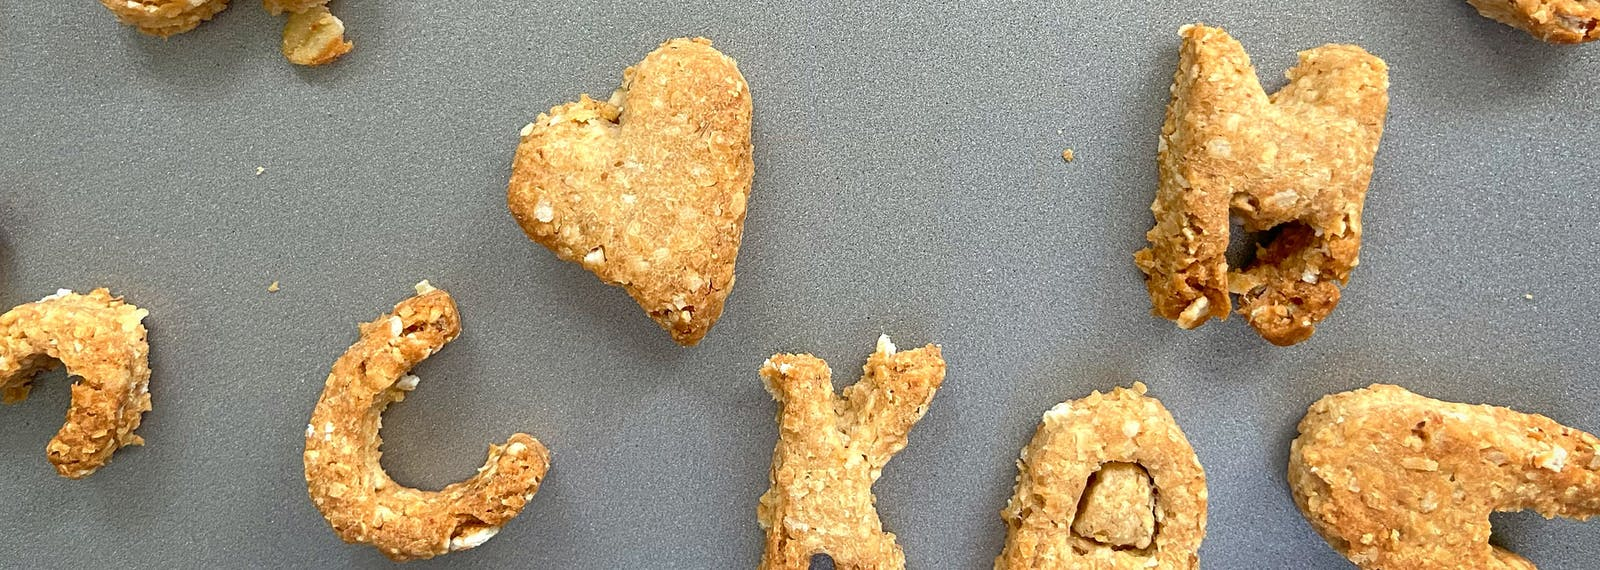 Homemade Peanut Butter Dog Biscuits